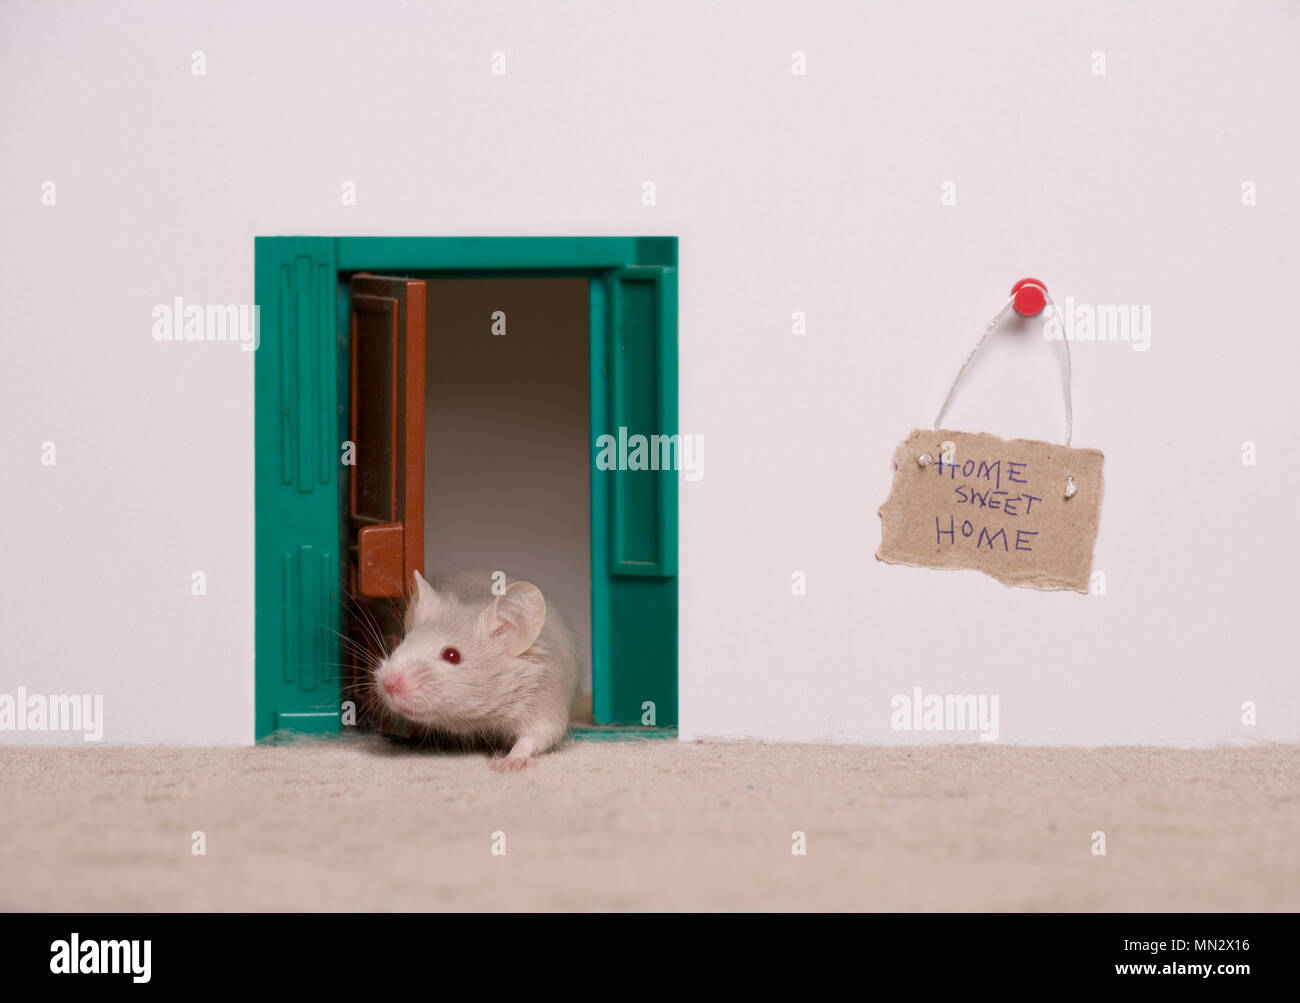 A mouse with its very own house. - Stock Image